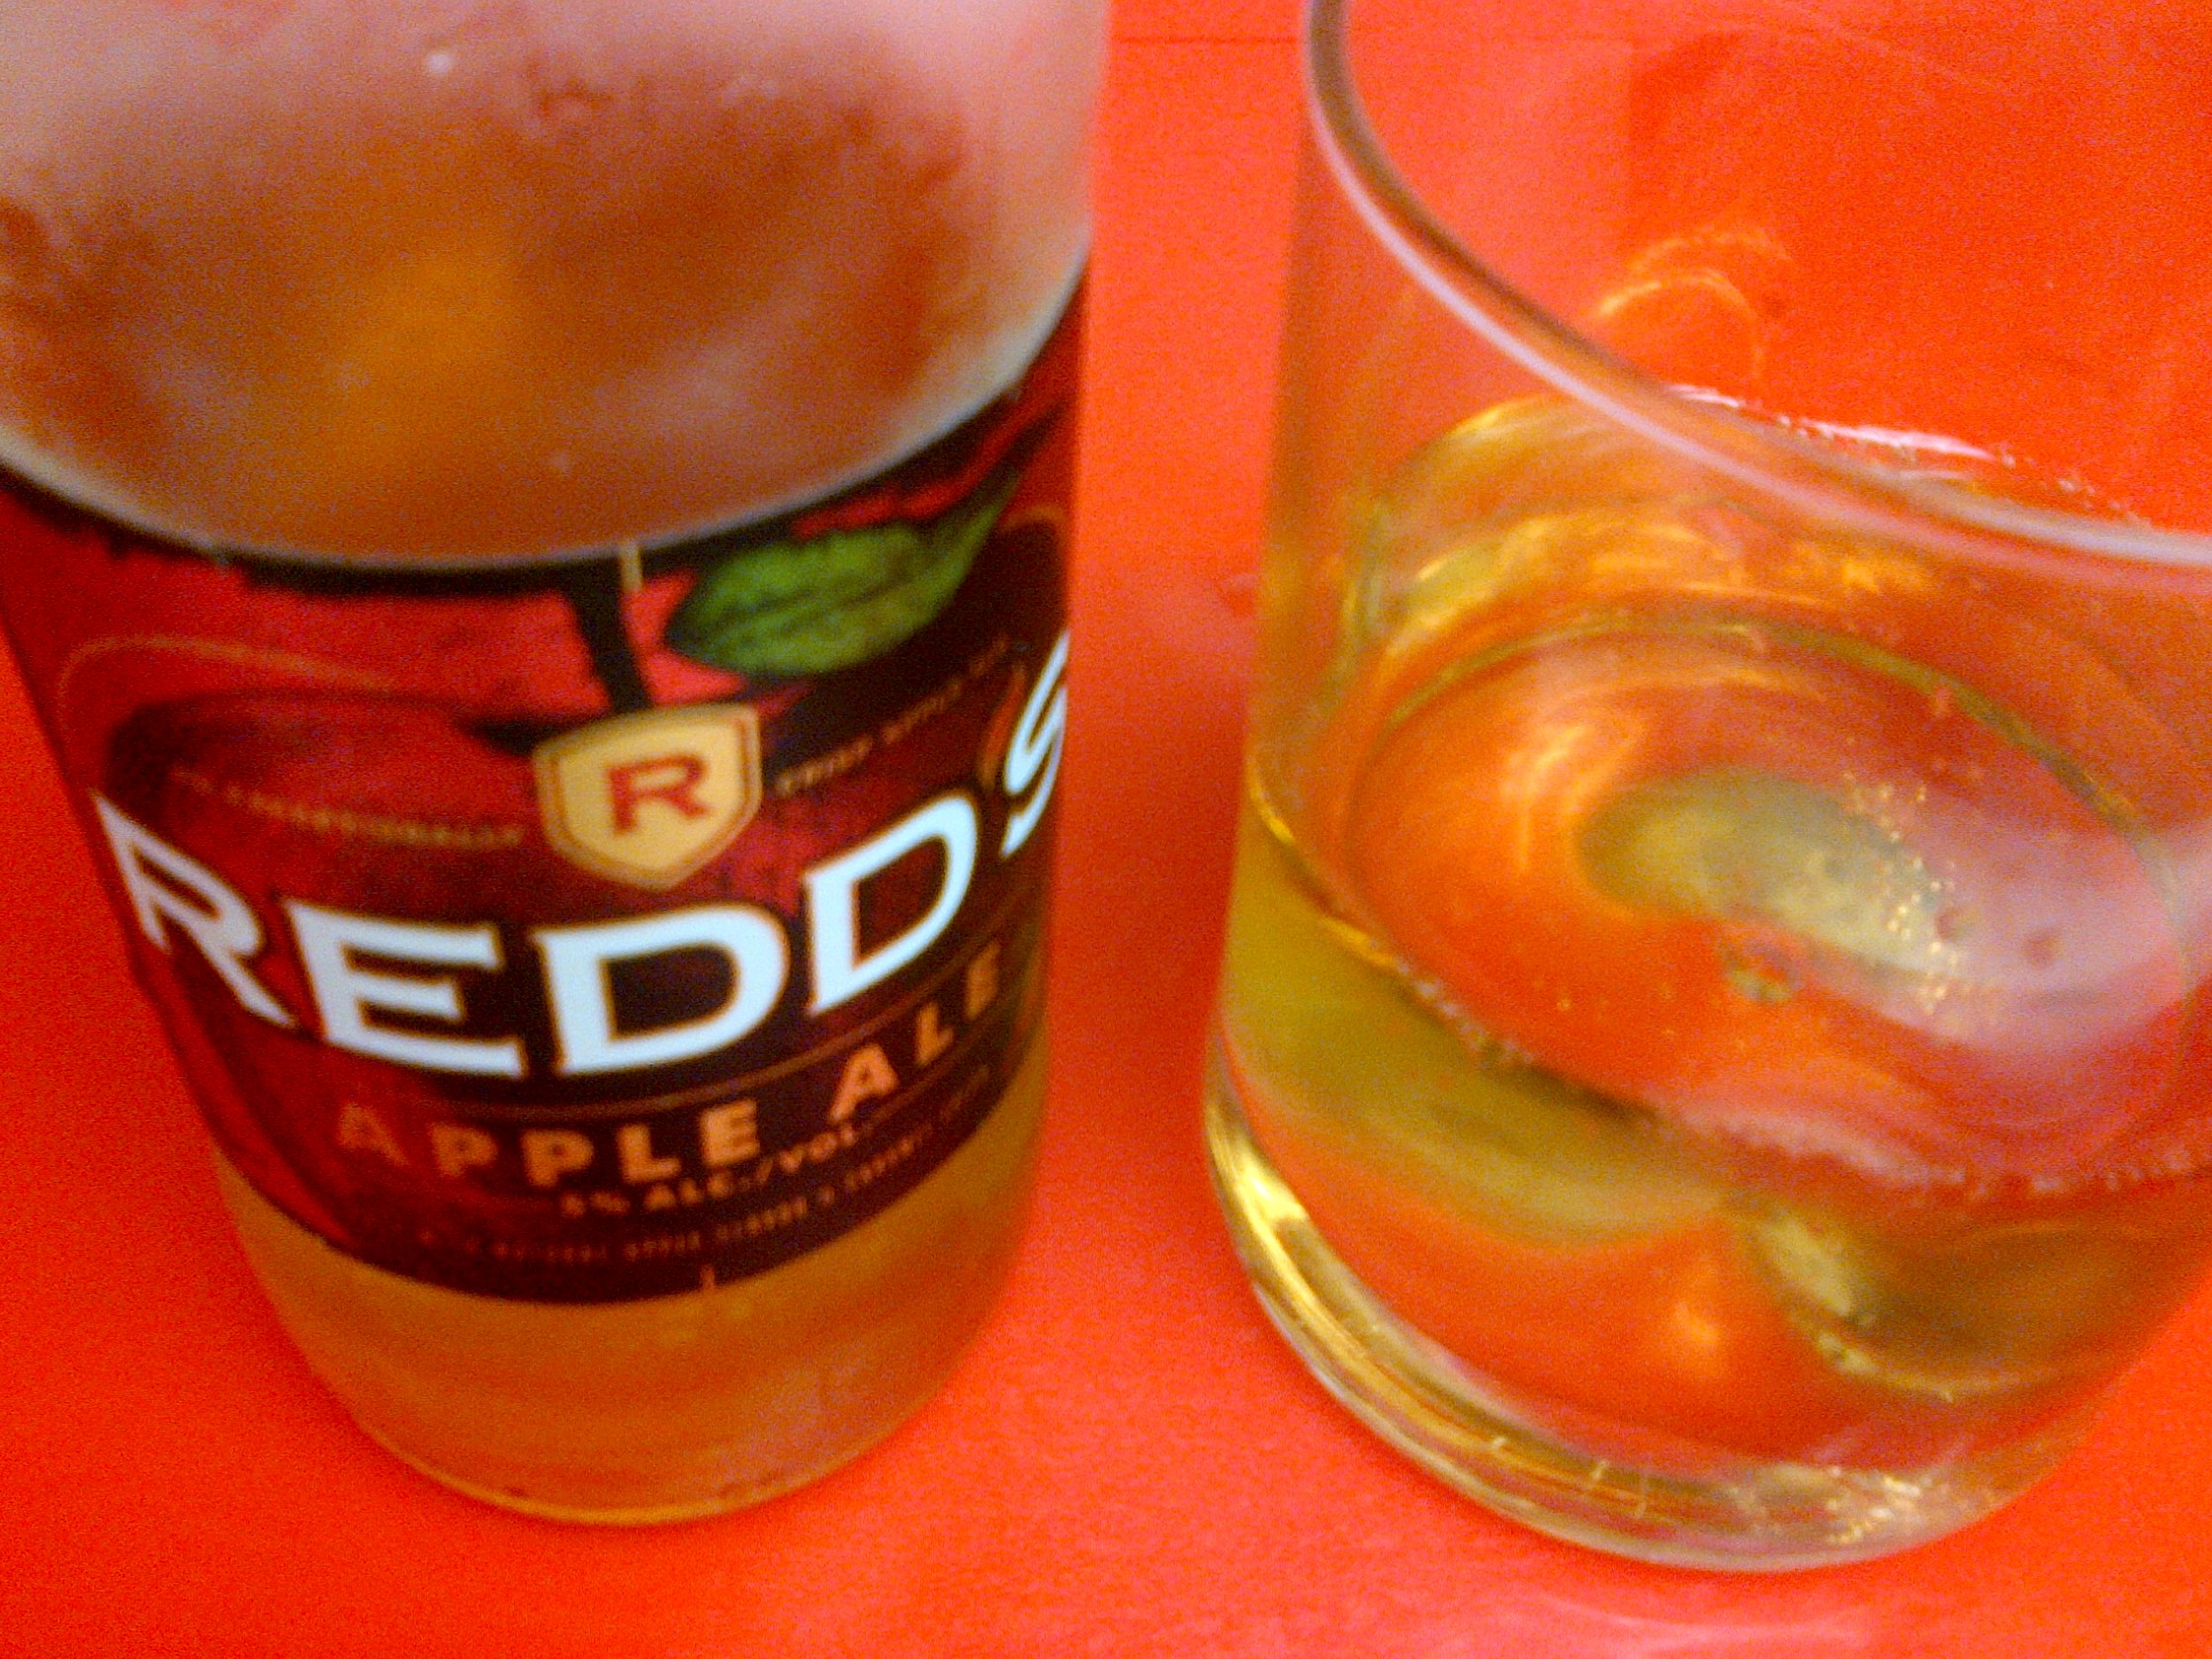 redds apple ale gluten free beer cider